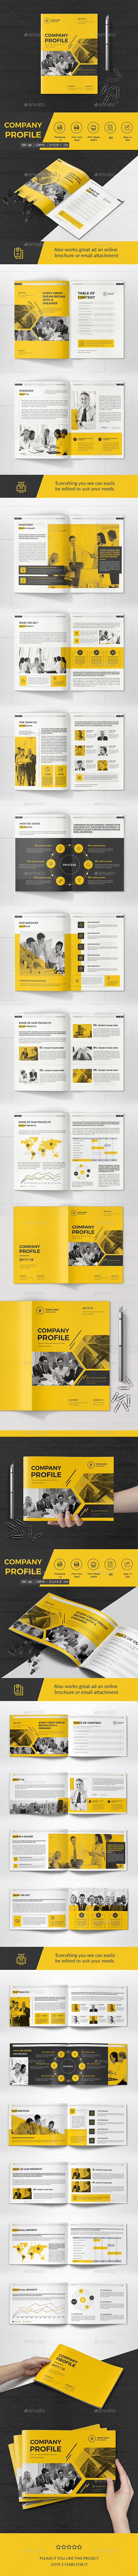 Bundle Company Profile - Corporate Brochures